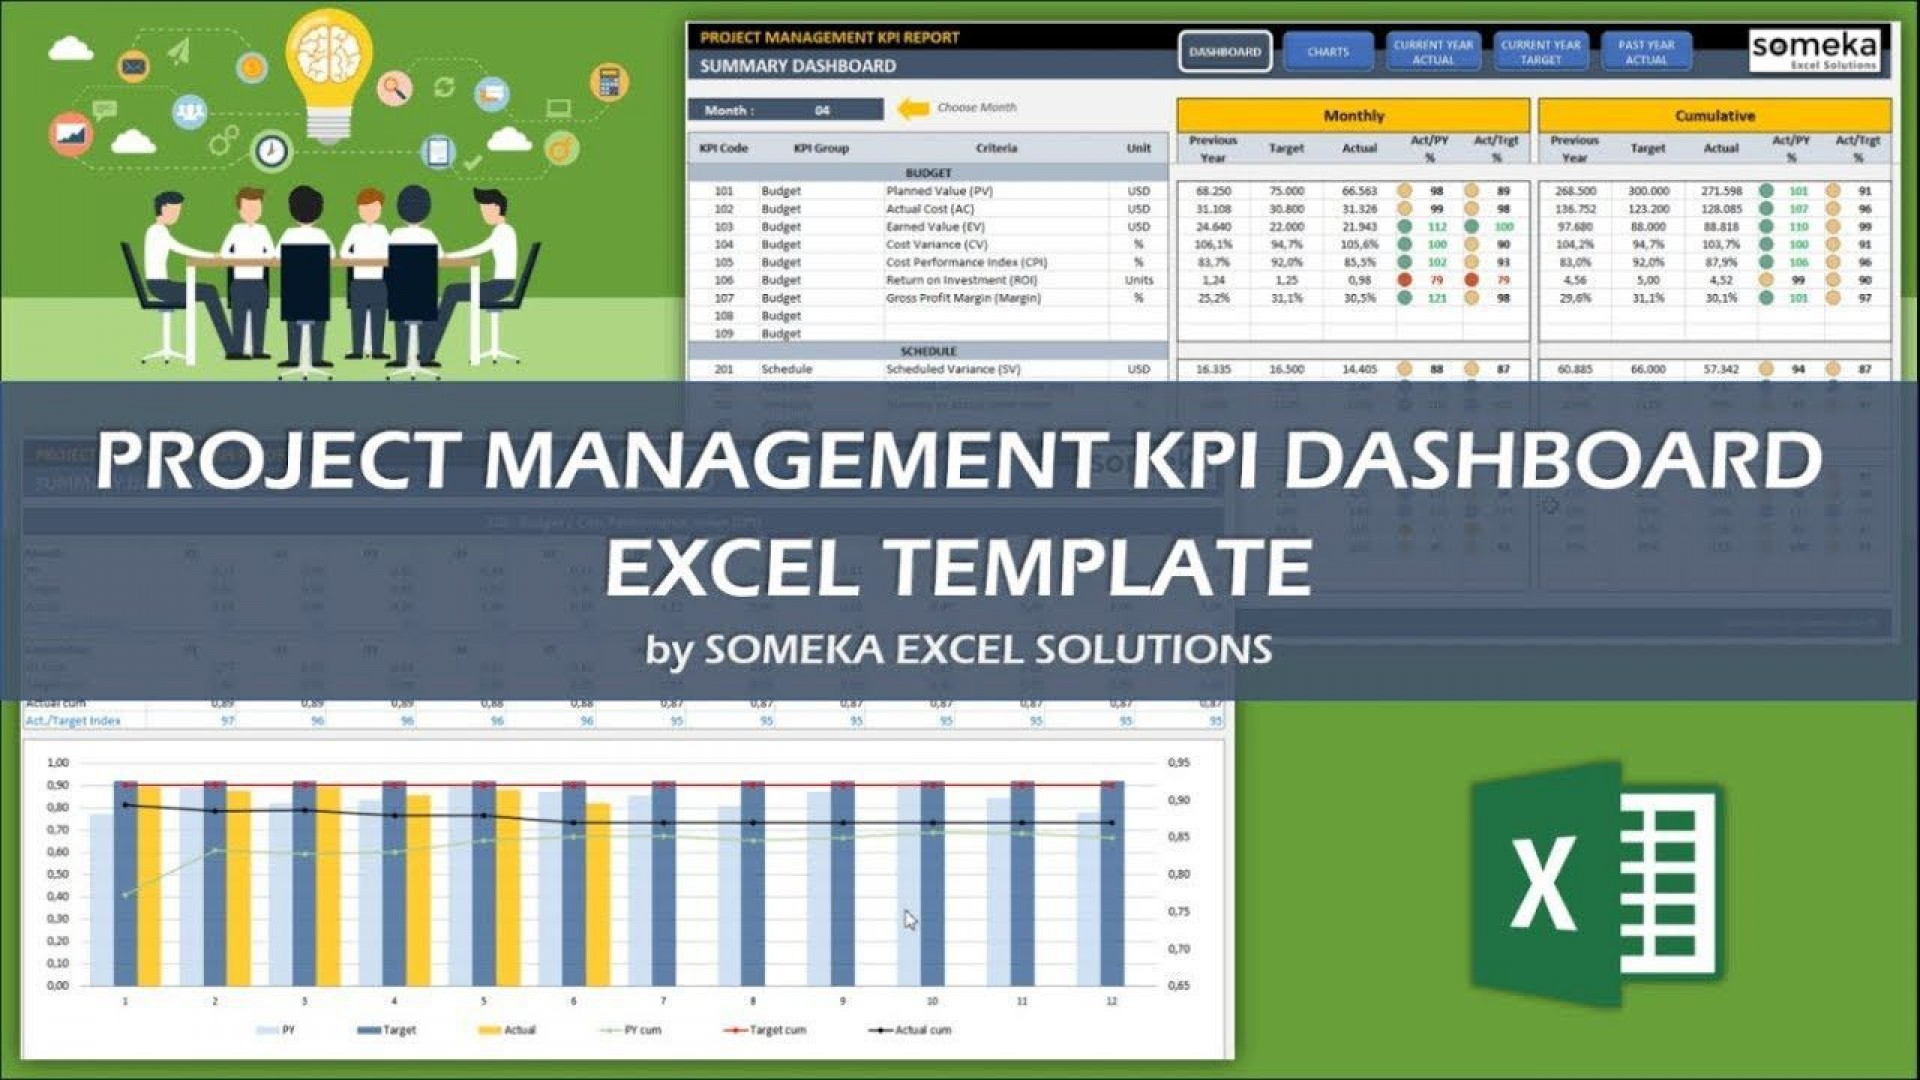 006 Wondrou Project Management Dashboard Excel Template Free High Definition  Simple Multiple1920